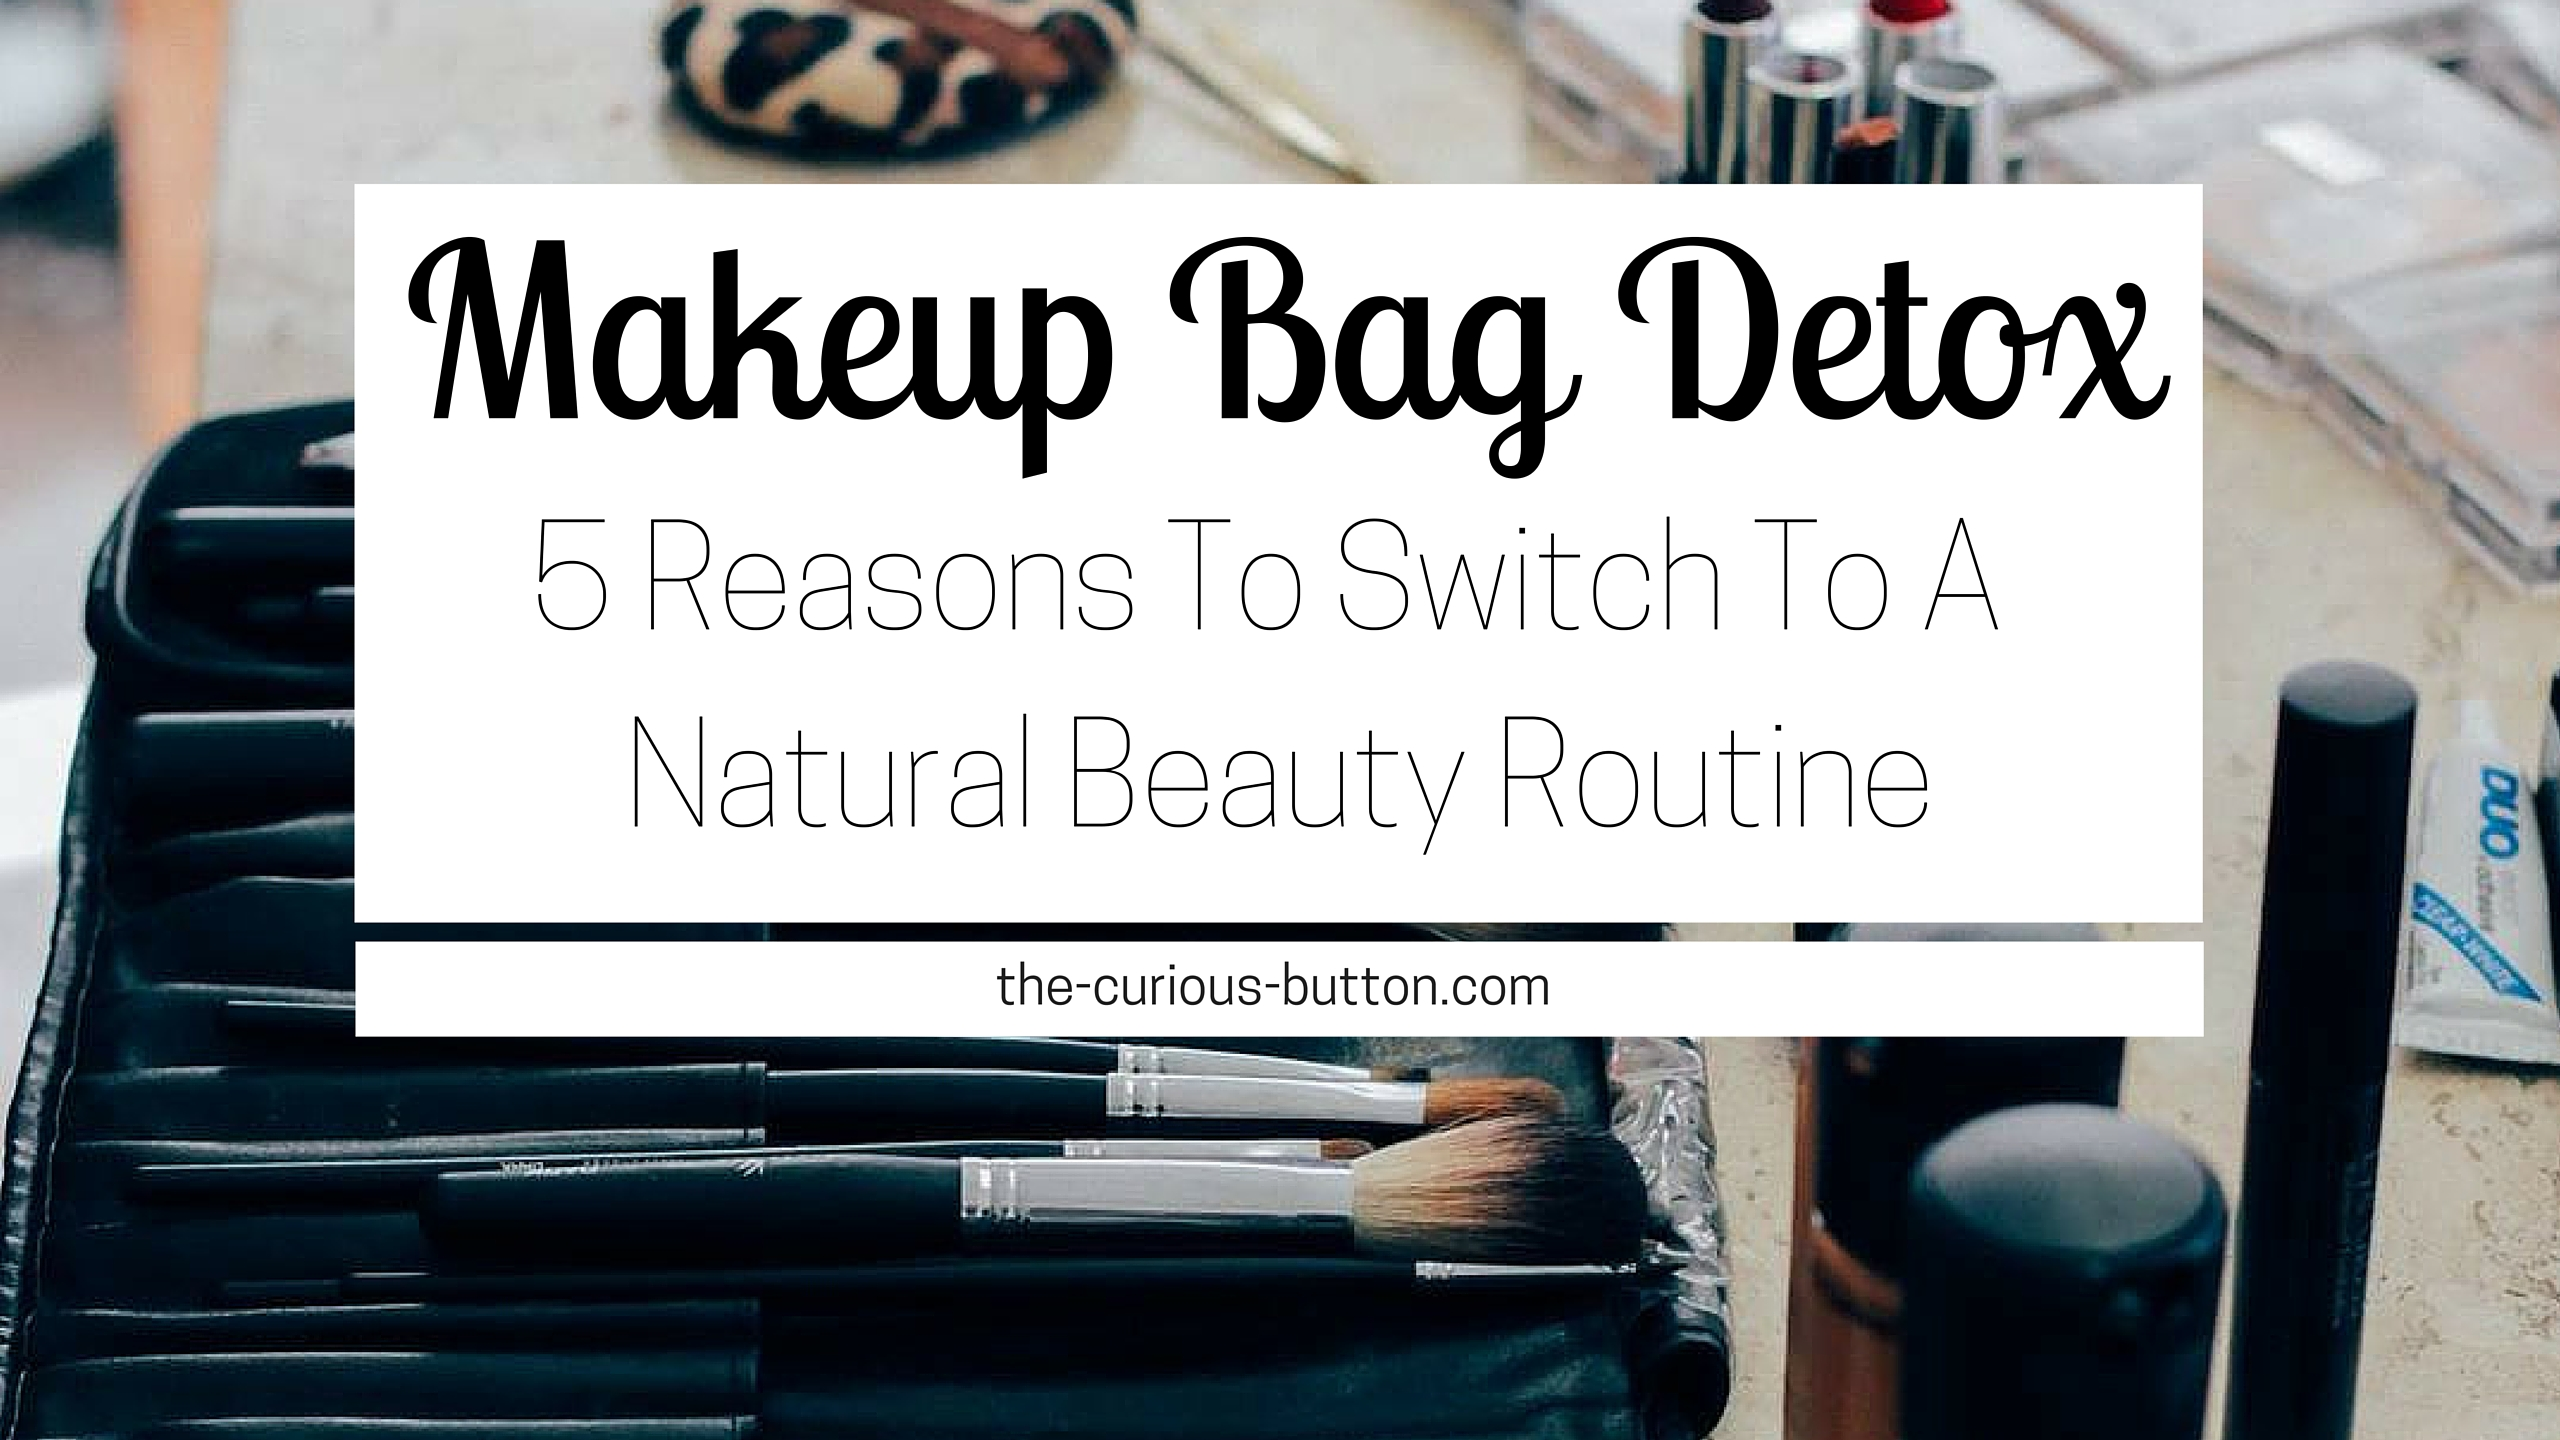 Makeup Bag Detox: 5 Reasons to Switch to a Natural Beauty Routine   The Curious Button